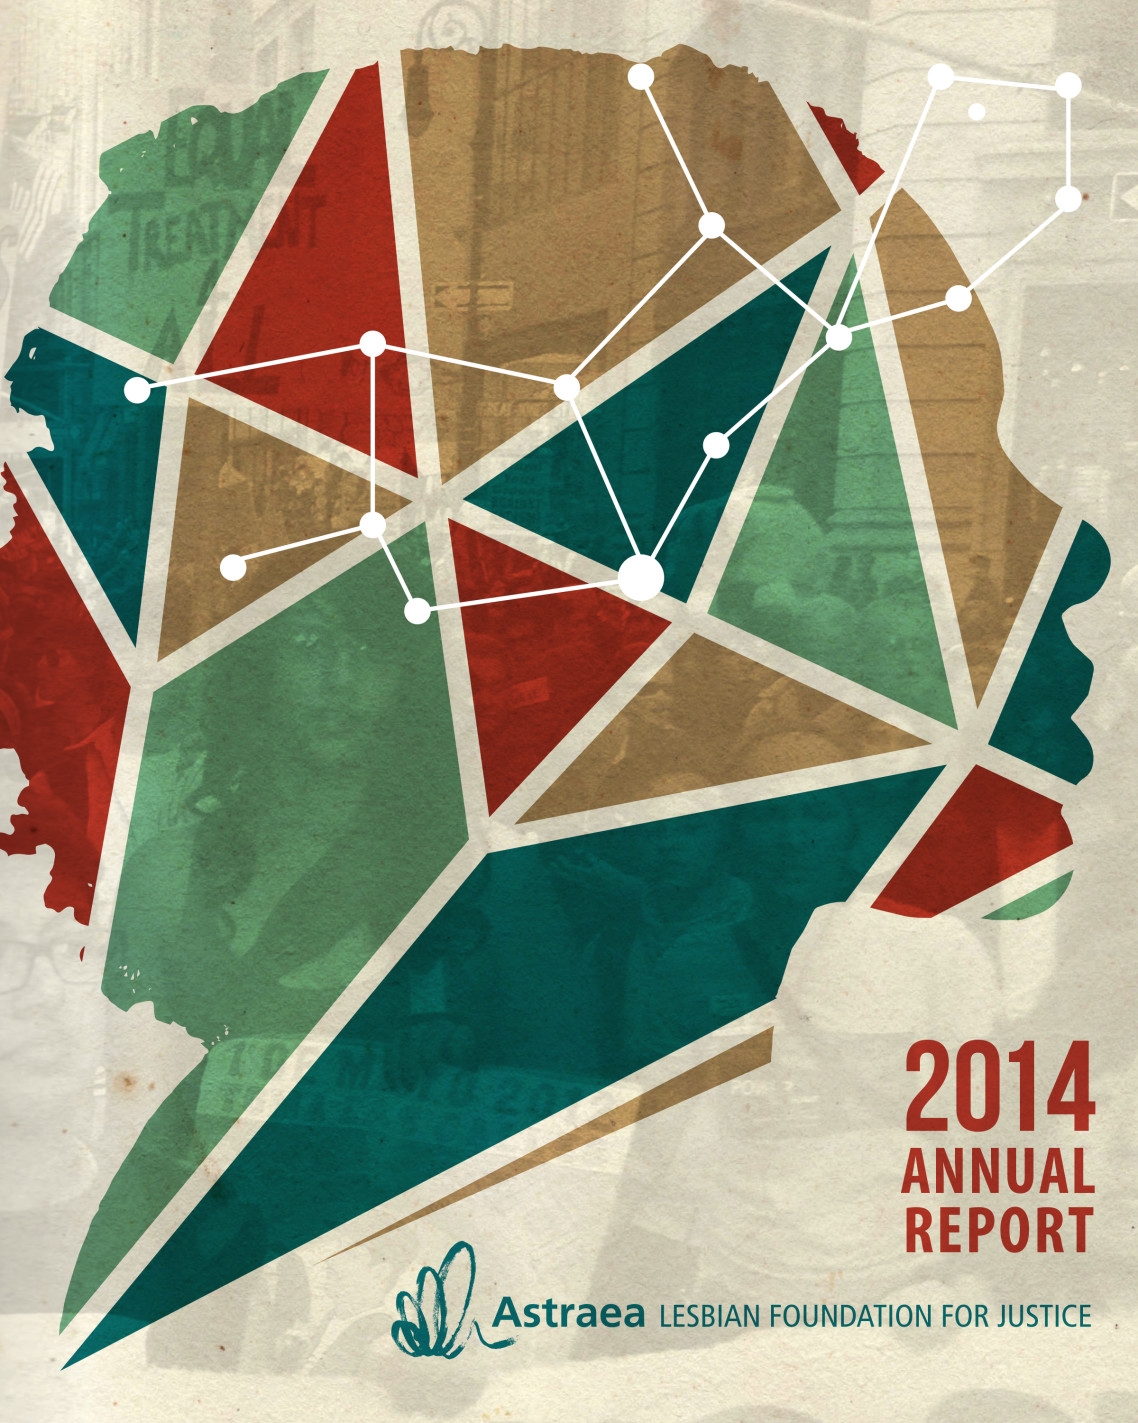 Astrea Lesbian Foundation For Justice Annual Report 2014